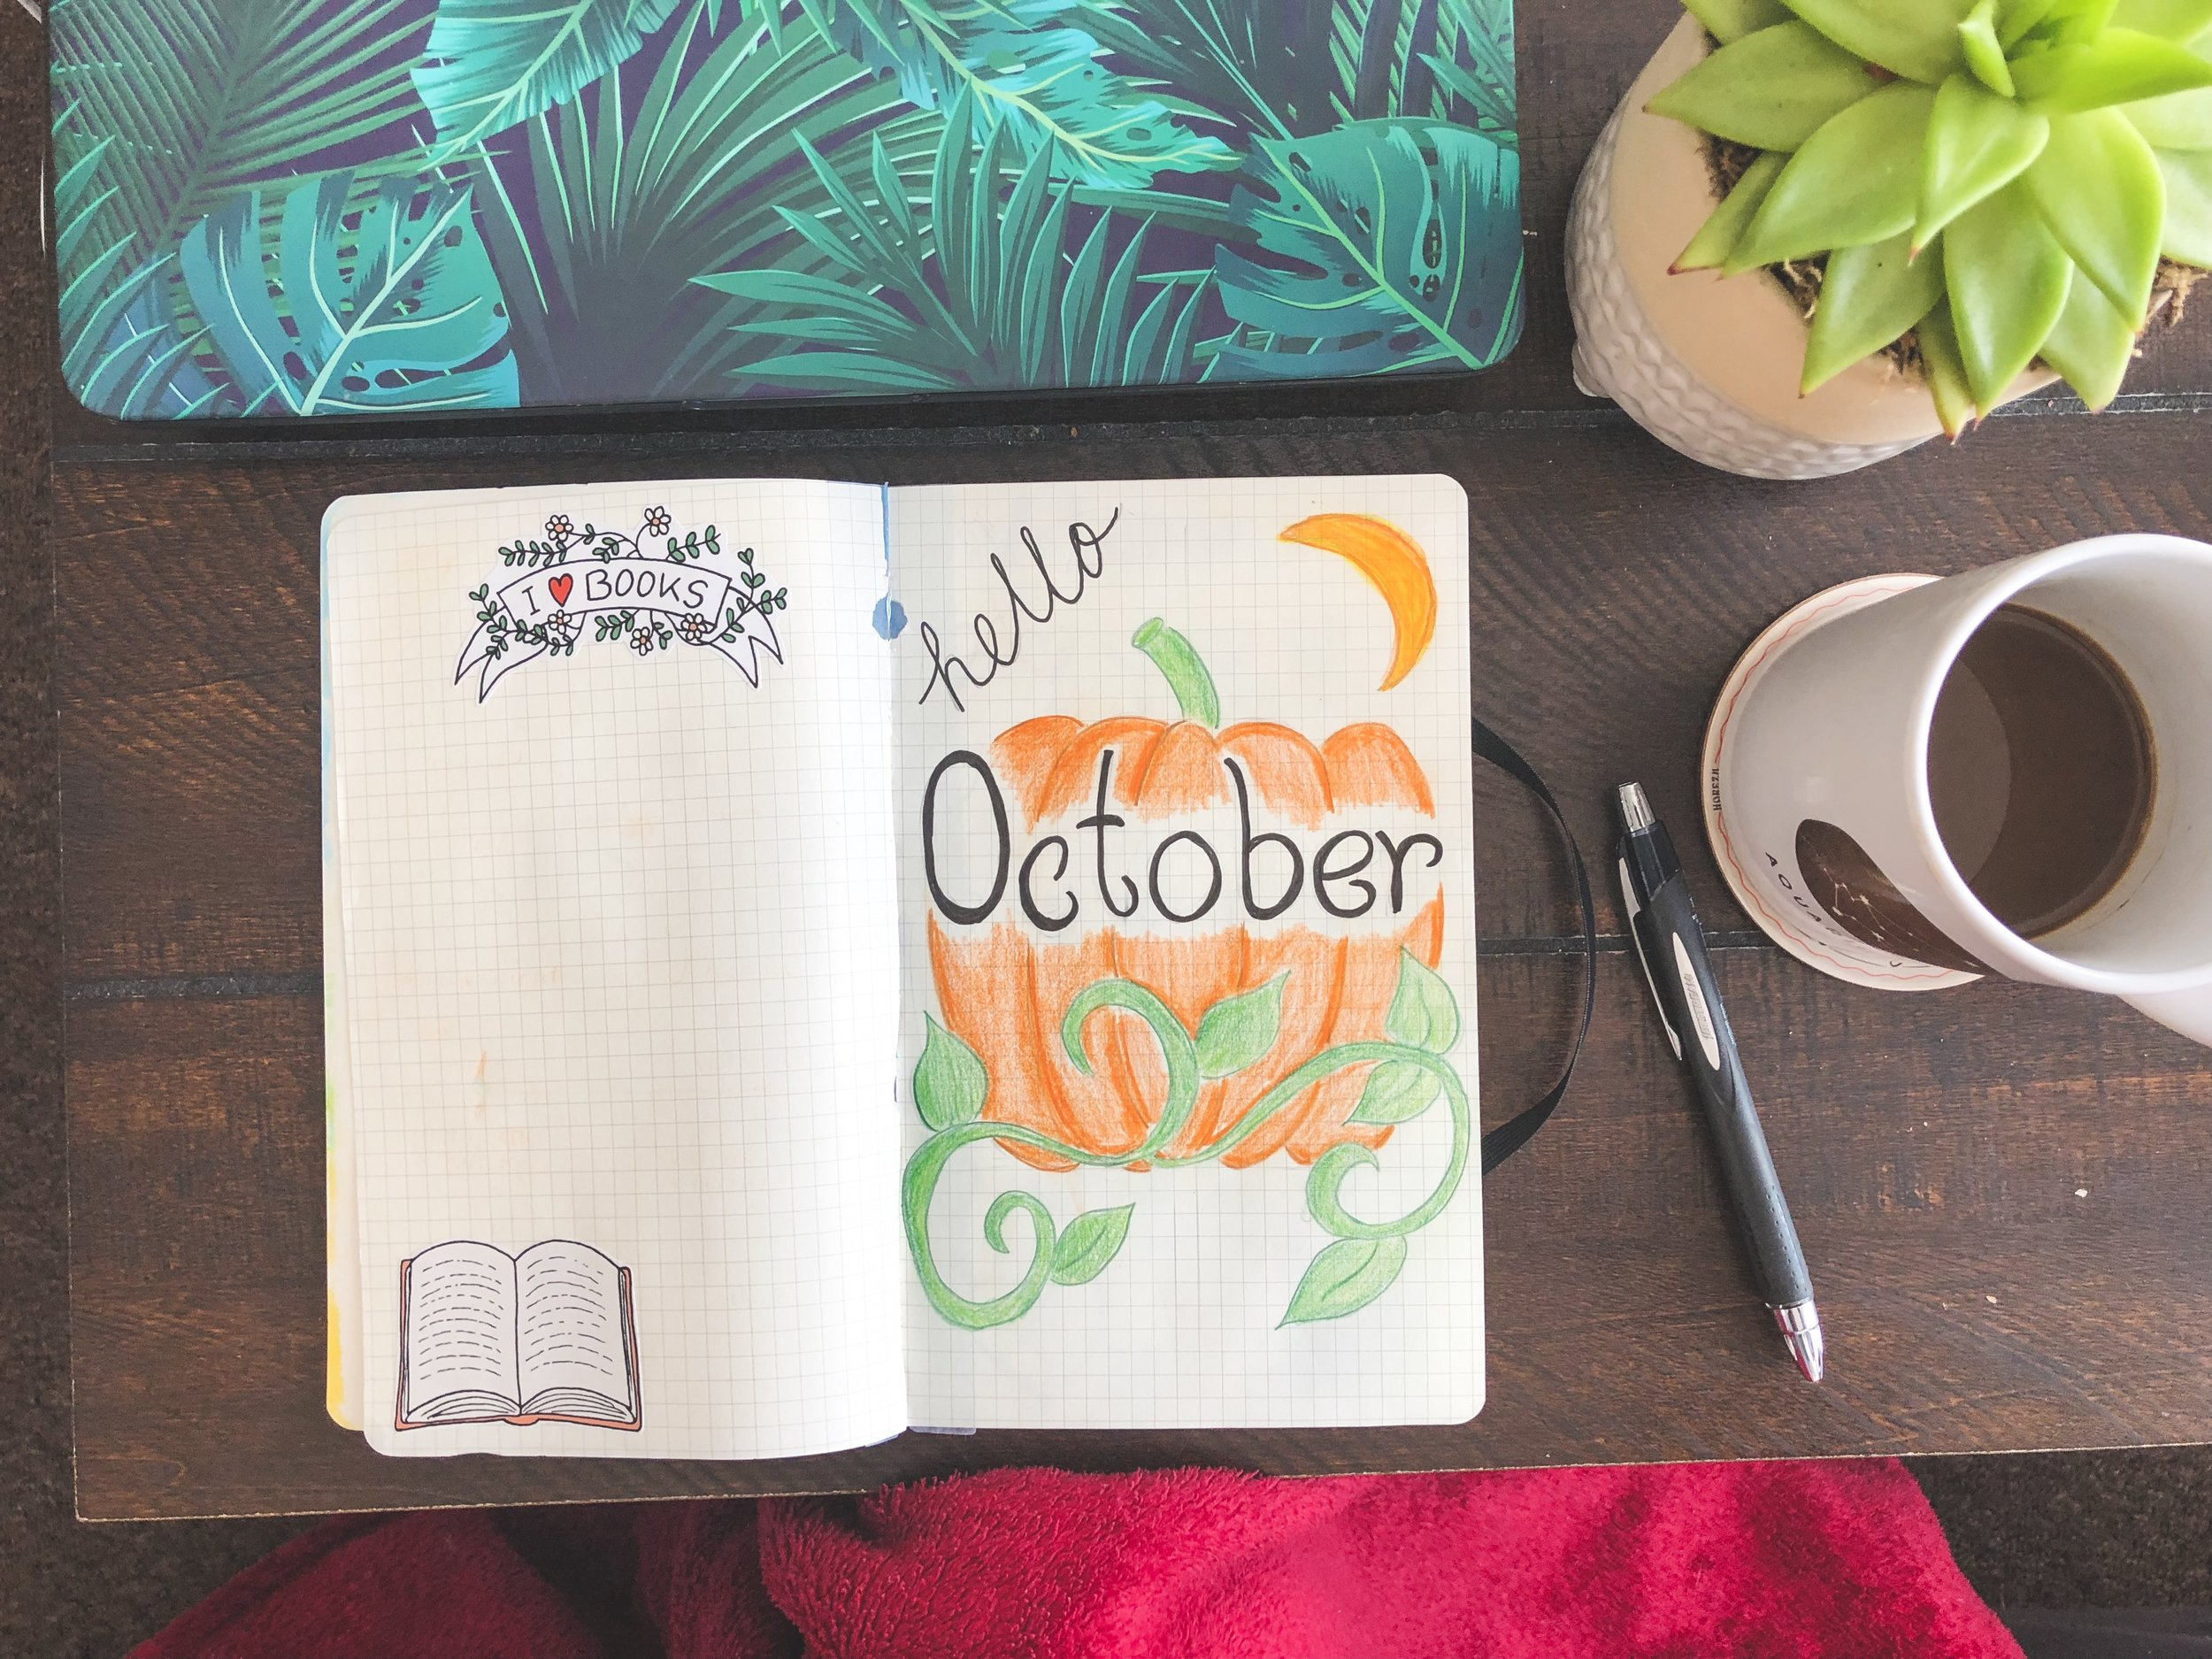 A combination of doodles and stickers liven up my pages! Also, this journal has seen FAR better days, since pages have been pulled out leaving that nifty rip right at the top. Also don't mind the half drunk coffee, blogging life is caffeine fuelled.